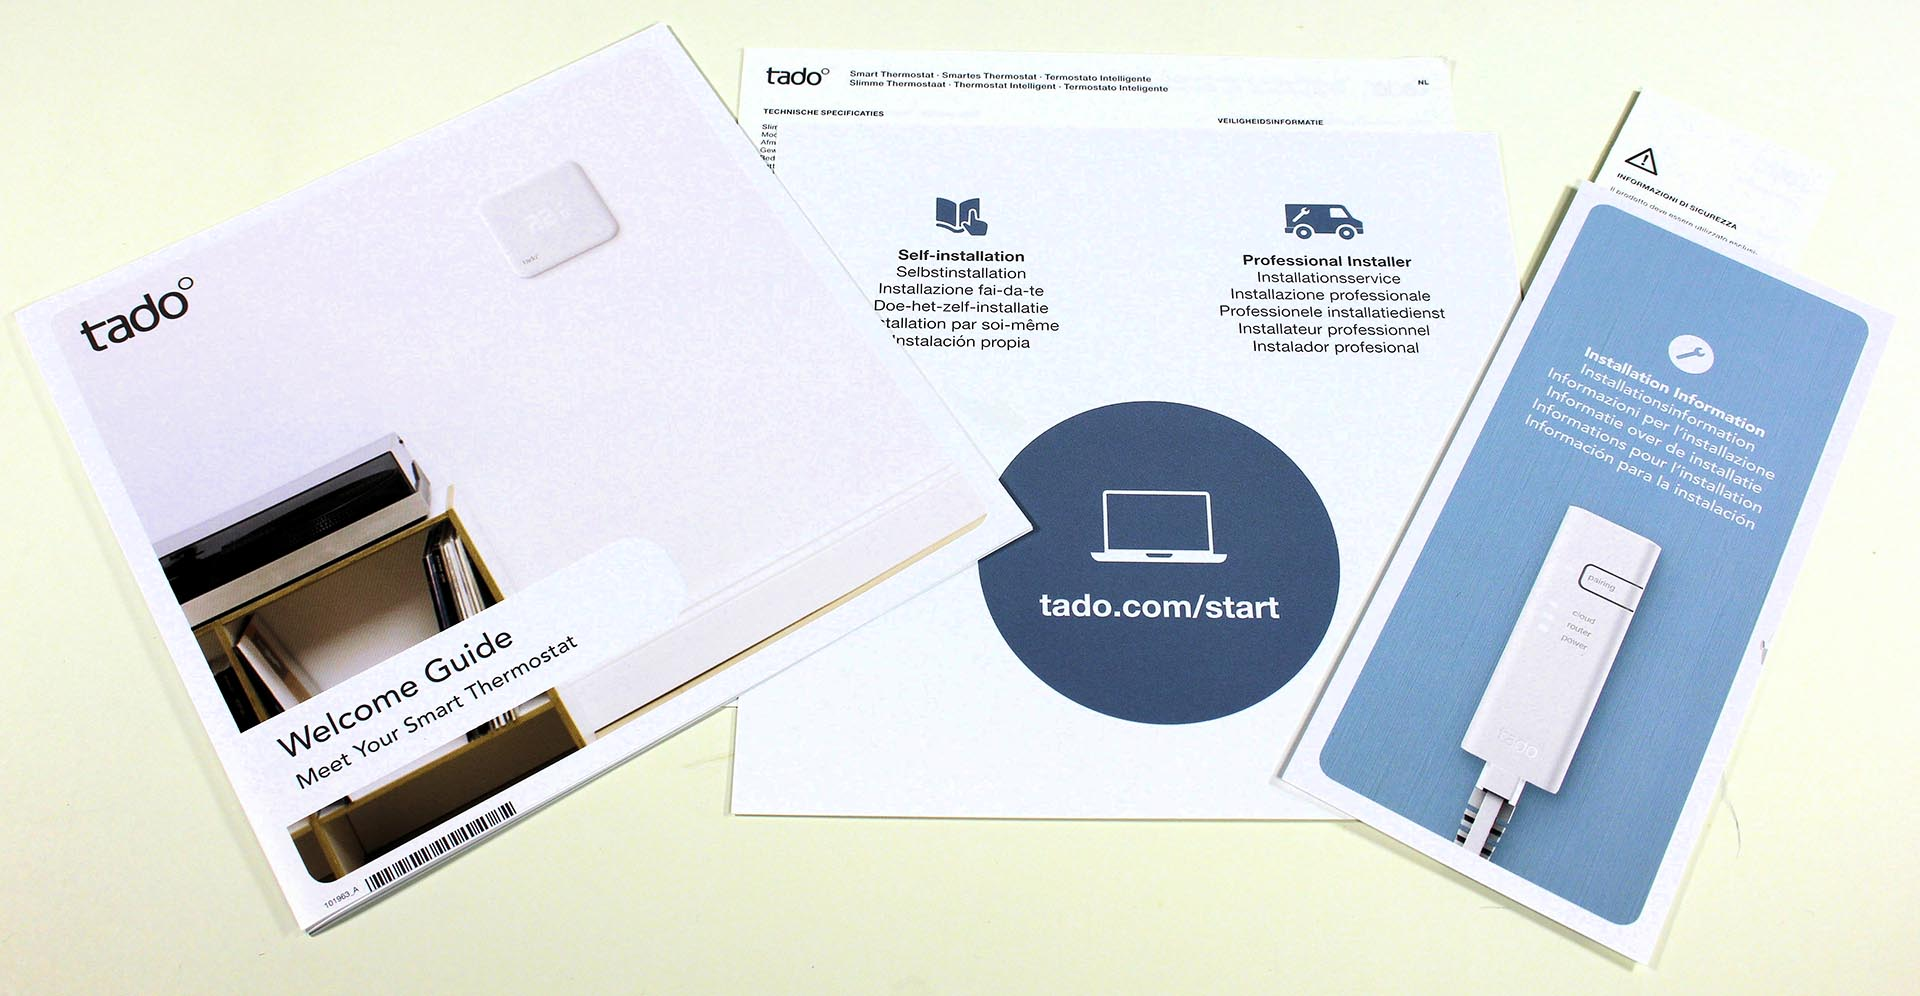 Review Tado Slimme Thermostaat Starterkit V3 Wiring Diagram For Thermostat Mg 5939